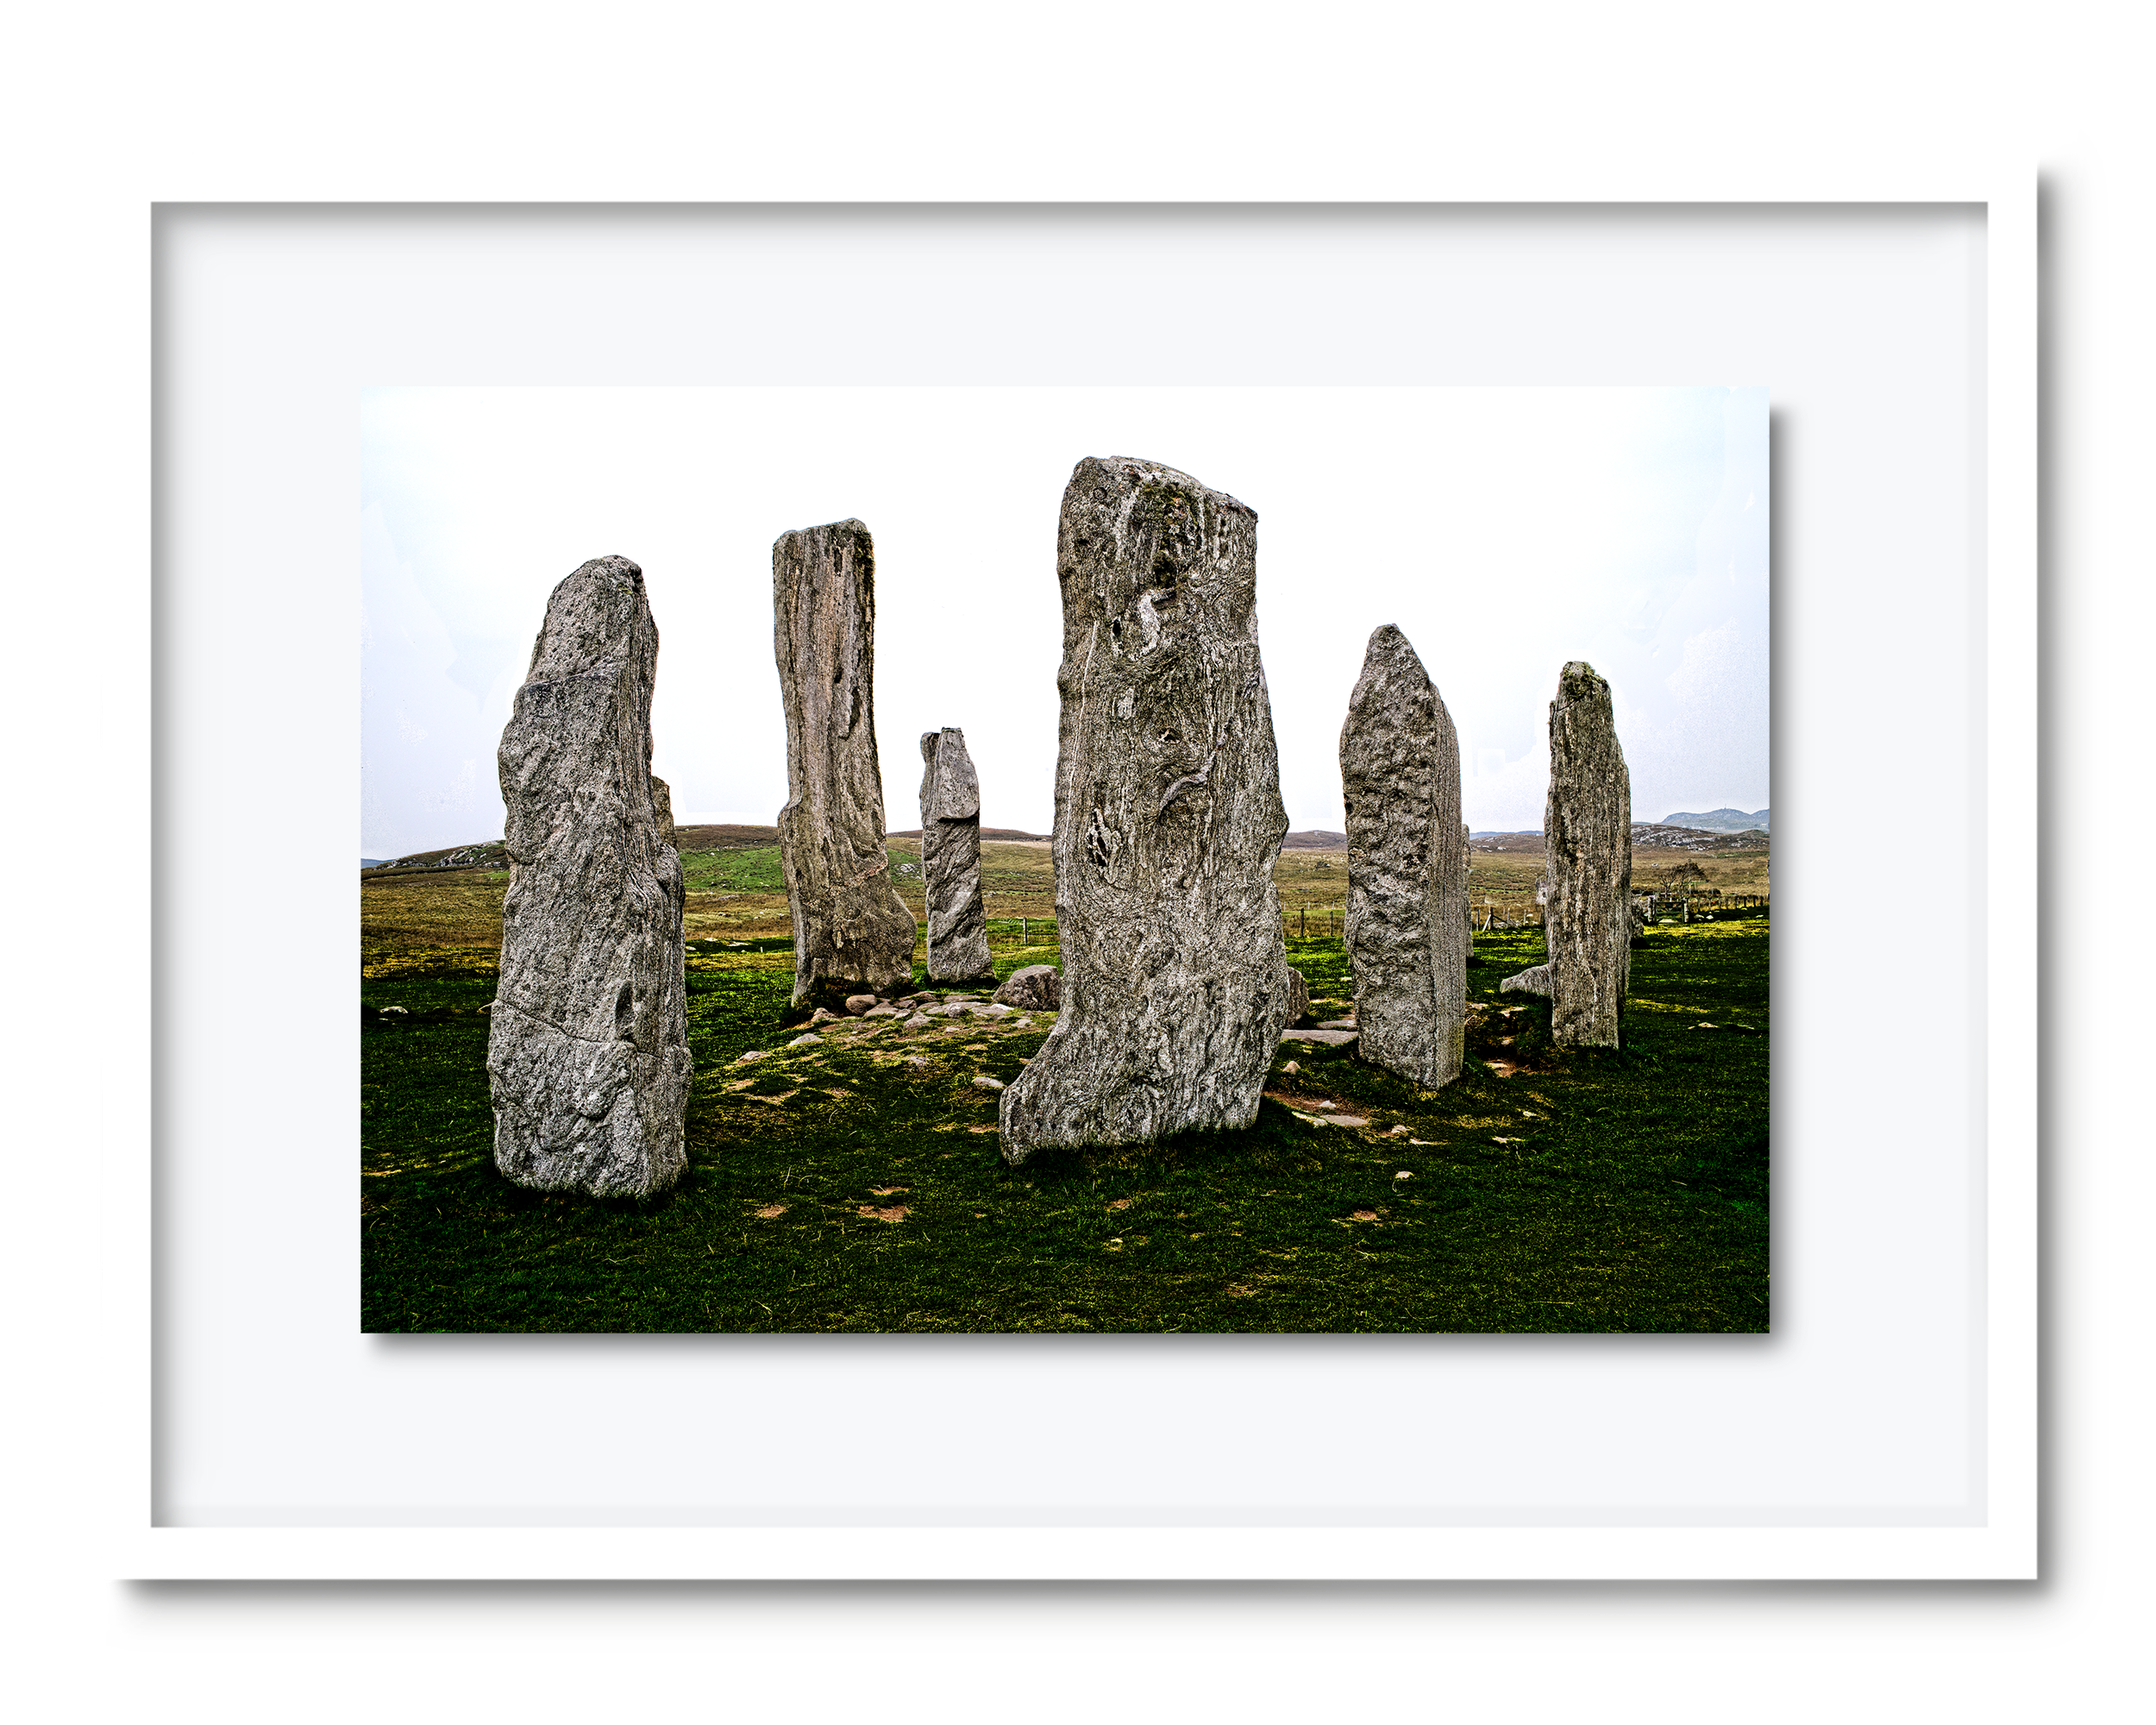 34.david-pearce-callanish-stones-outer-hebrides.png